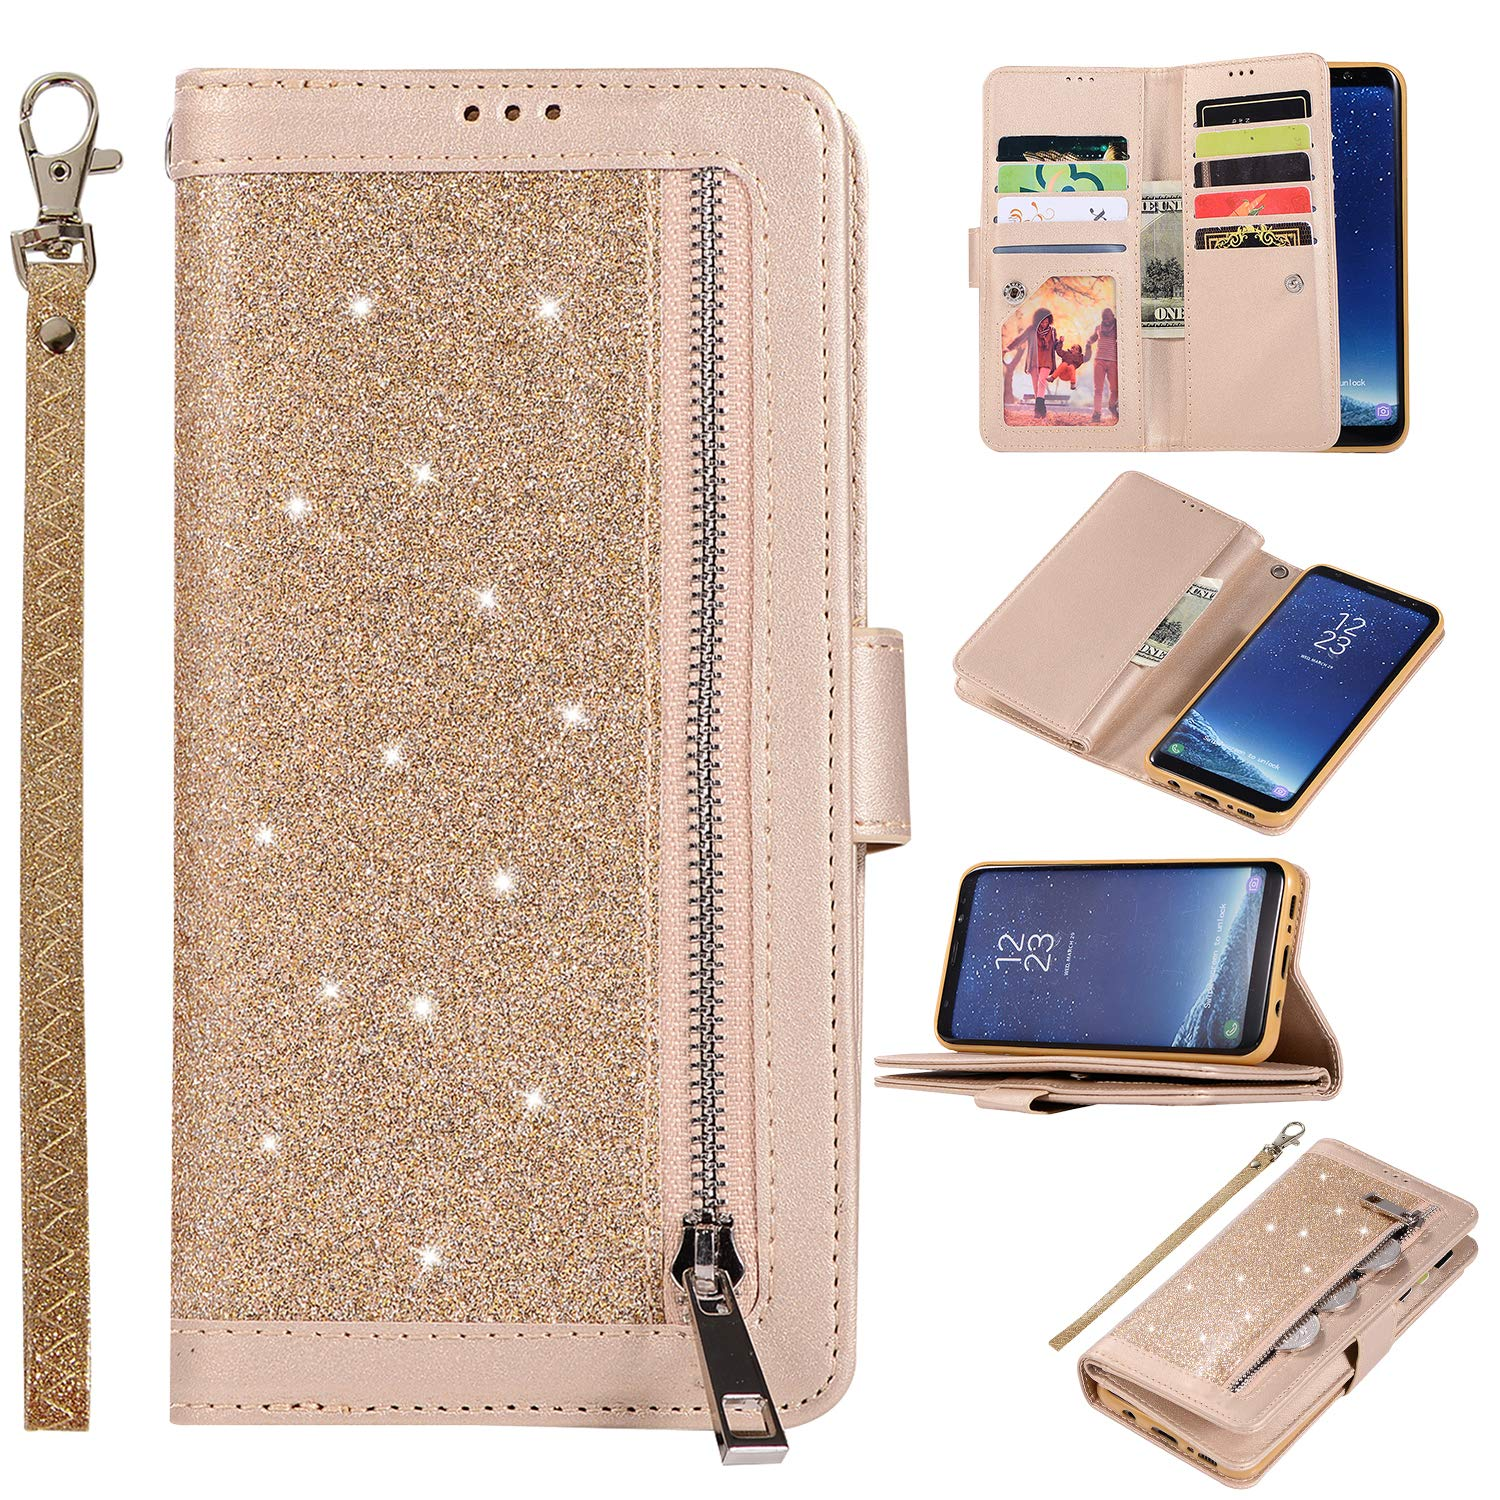 Shinyzone Glitter PU Case for Samsung Galaxy S8 Plus,Wallet Leather Flip Case with Zipper Pocket,Bling Cover with 9 Card Holder and Wrist Strap Magnetic Stand Function,Gold